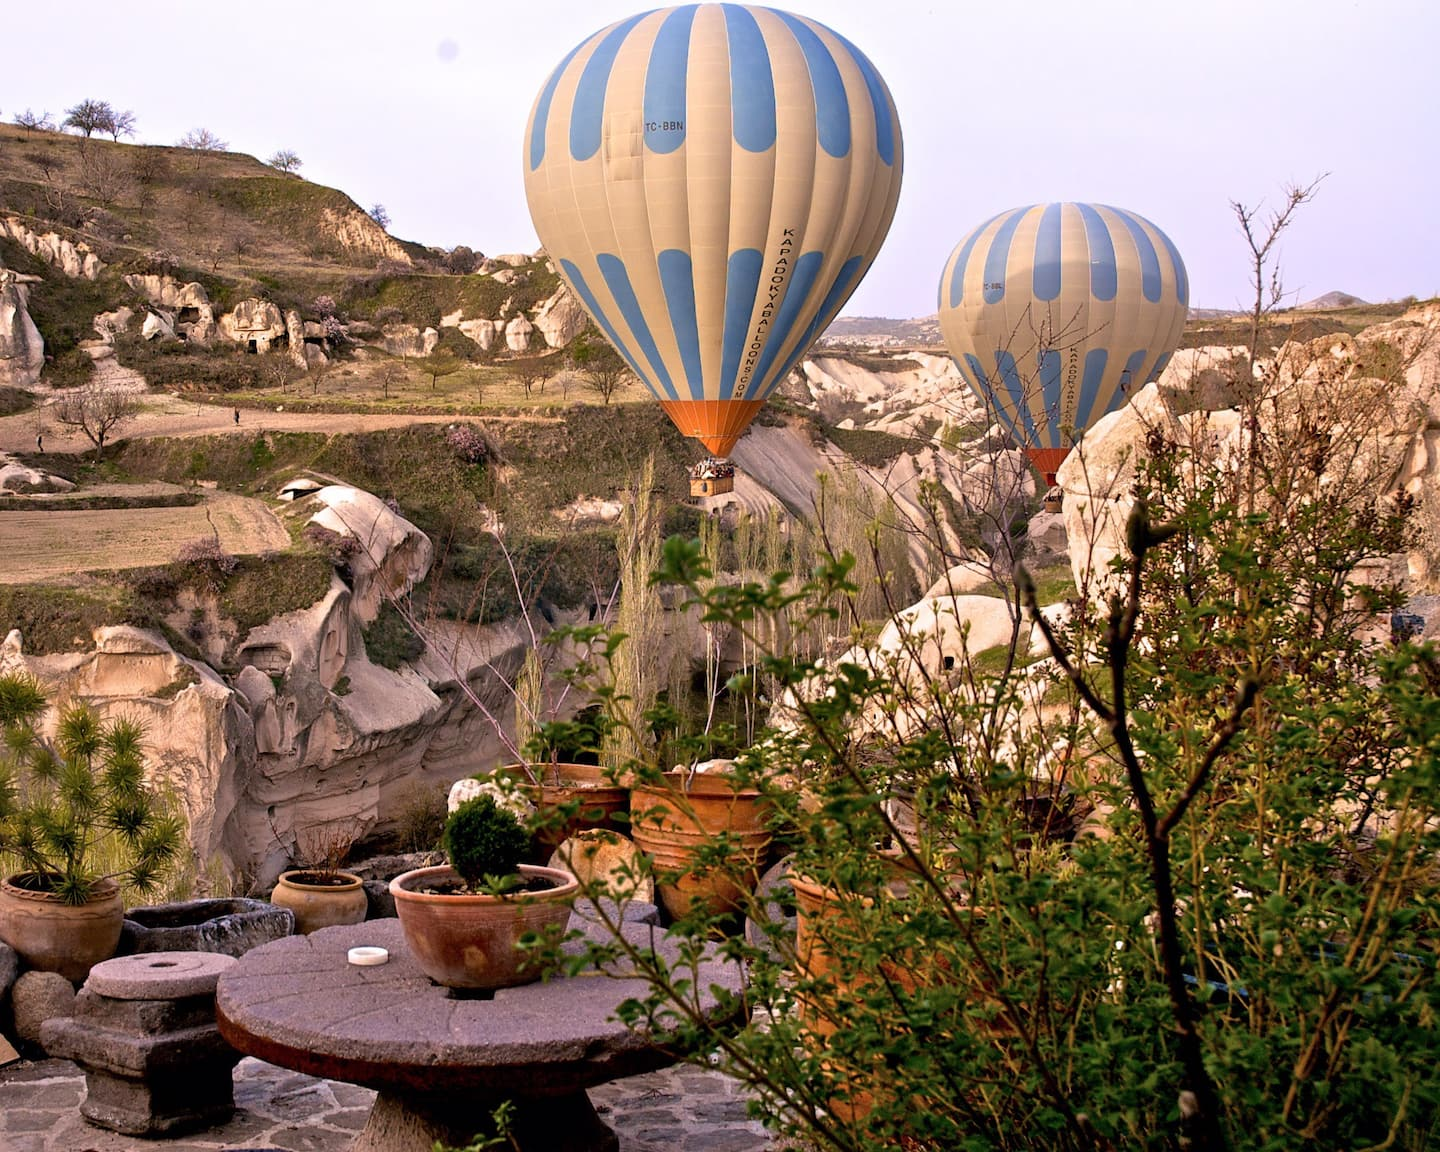 AirBnB in Turkey, Cappadocia: Cave house, character, and valley & balloon views!